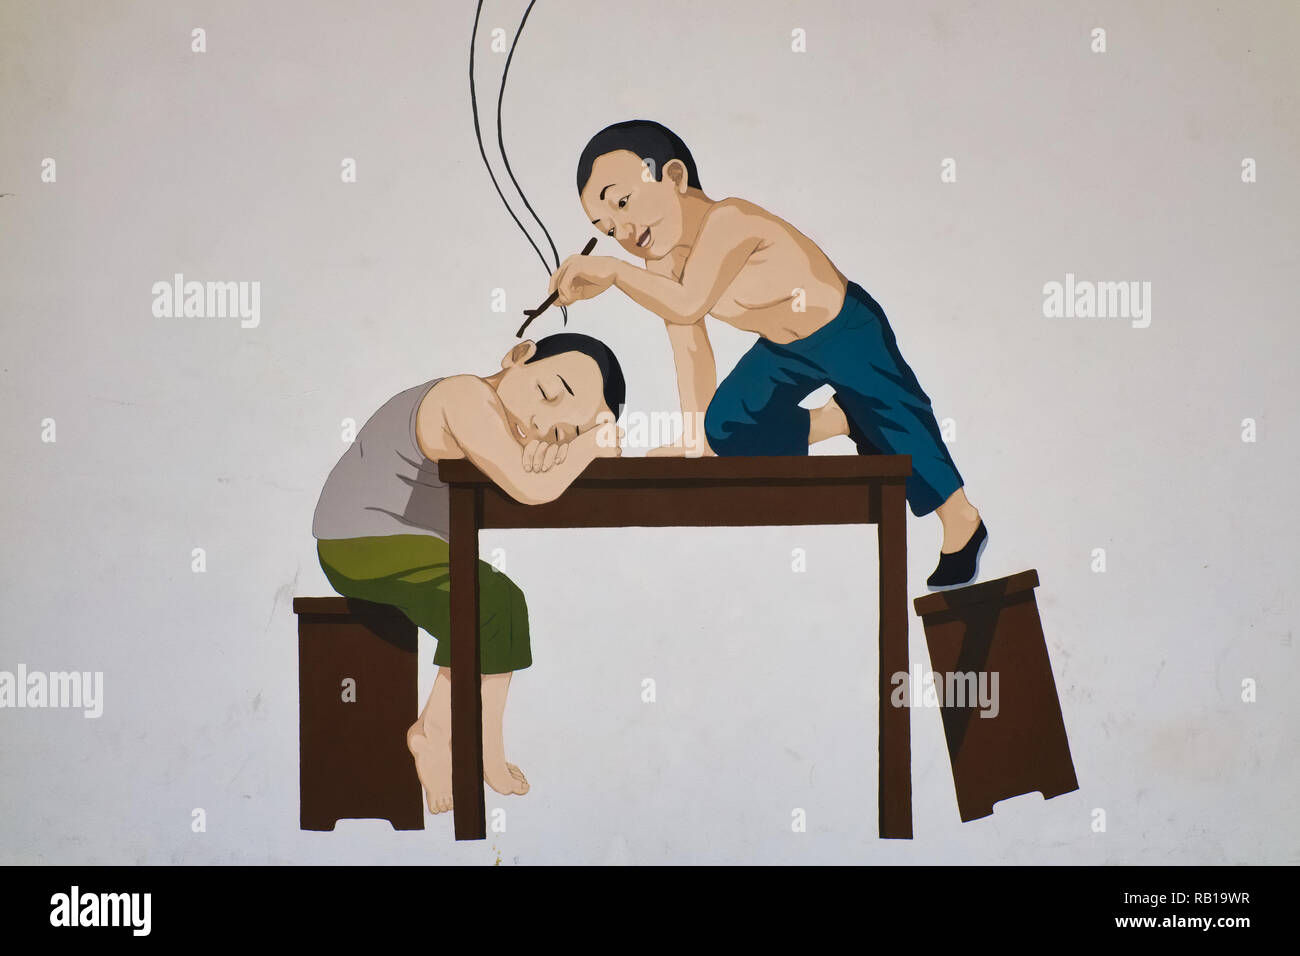 A wall painting in Far East Square, Chinatown, Singapore, depicting a Chinese boy of days gone by teasing his sleeping friend - Stock Image